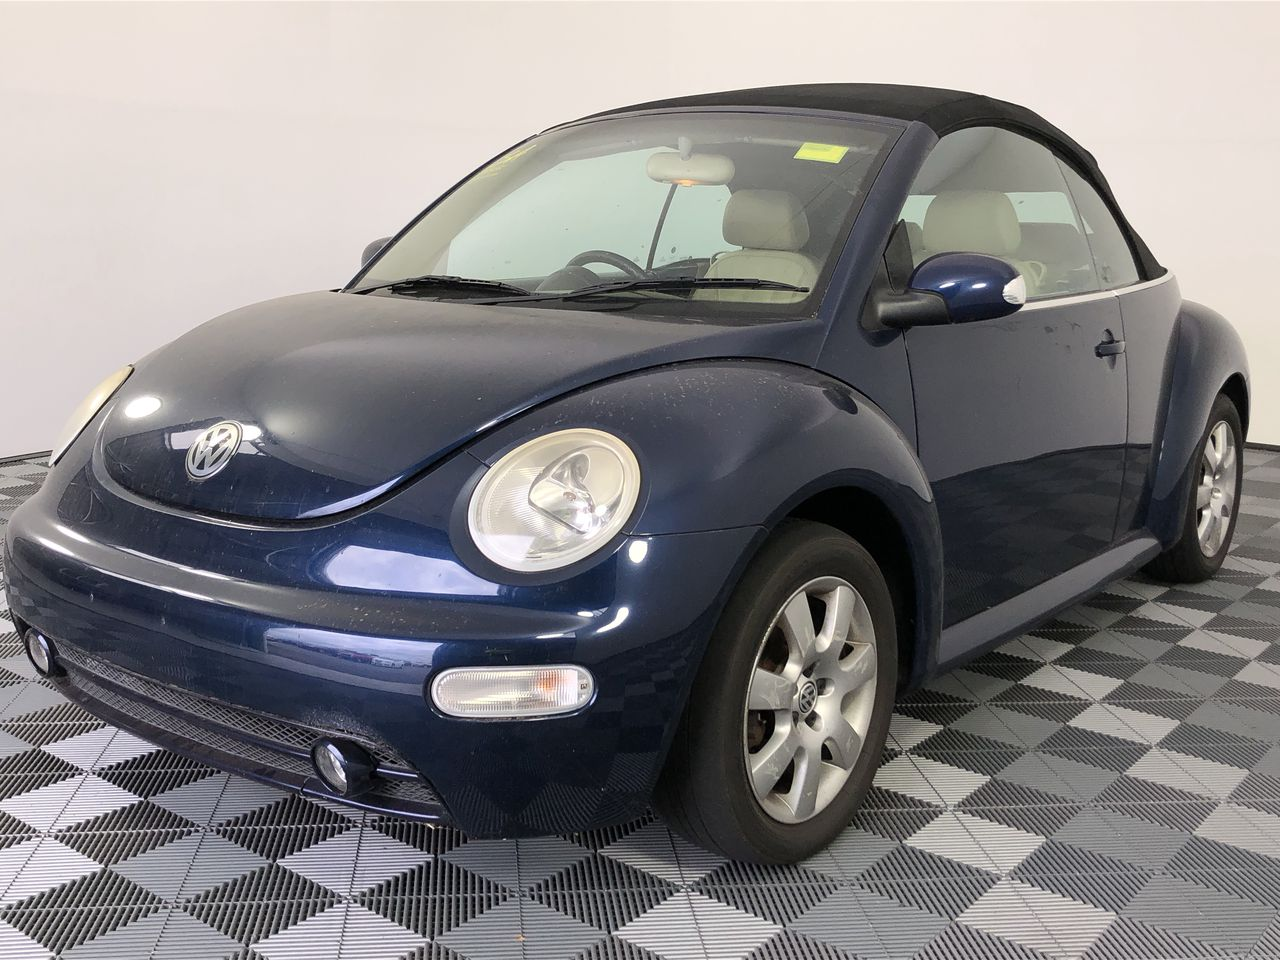 2004 Volkswagen New Beetle 2.0 Cabriolet A4 Manual Convertible